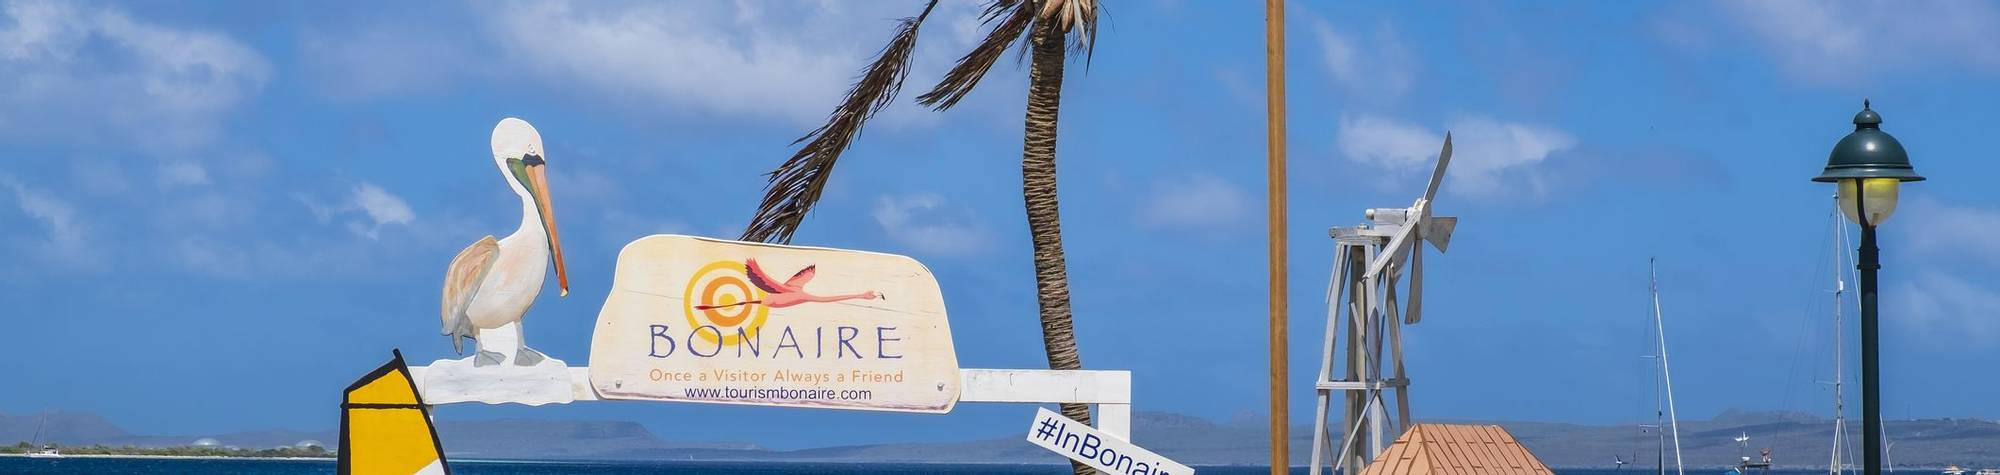 The perfect spot for a souvenir picture in Kralendijk, the capital city and main port of the island of Bonaire in the Caribb…